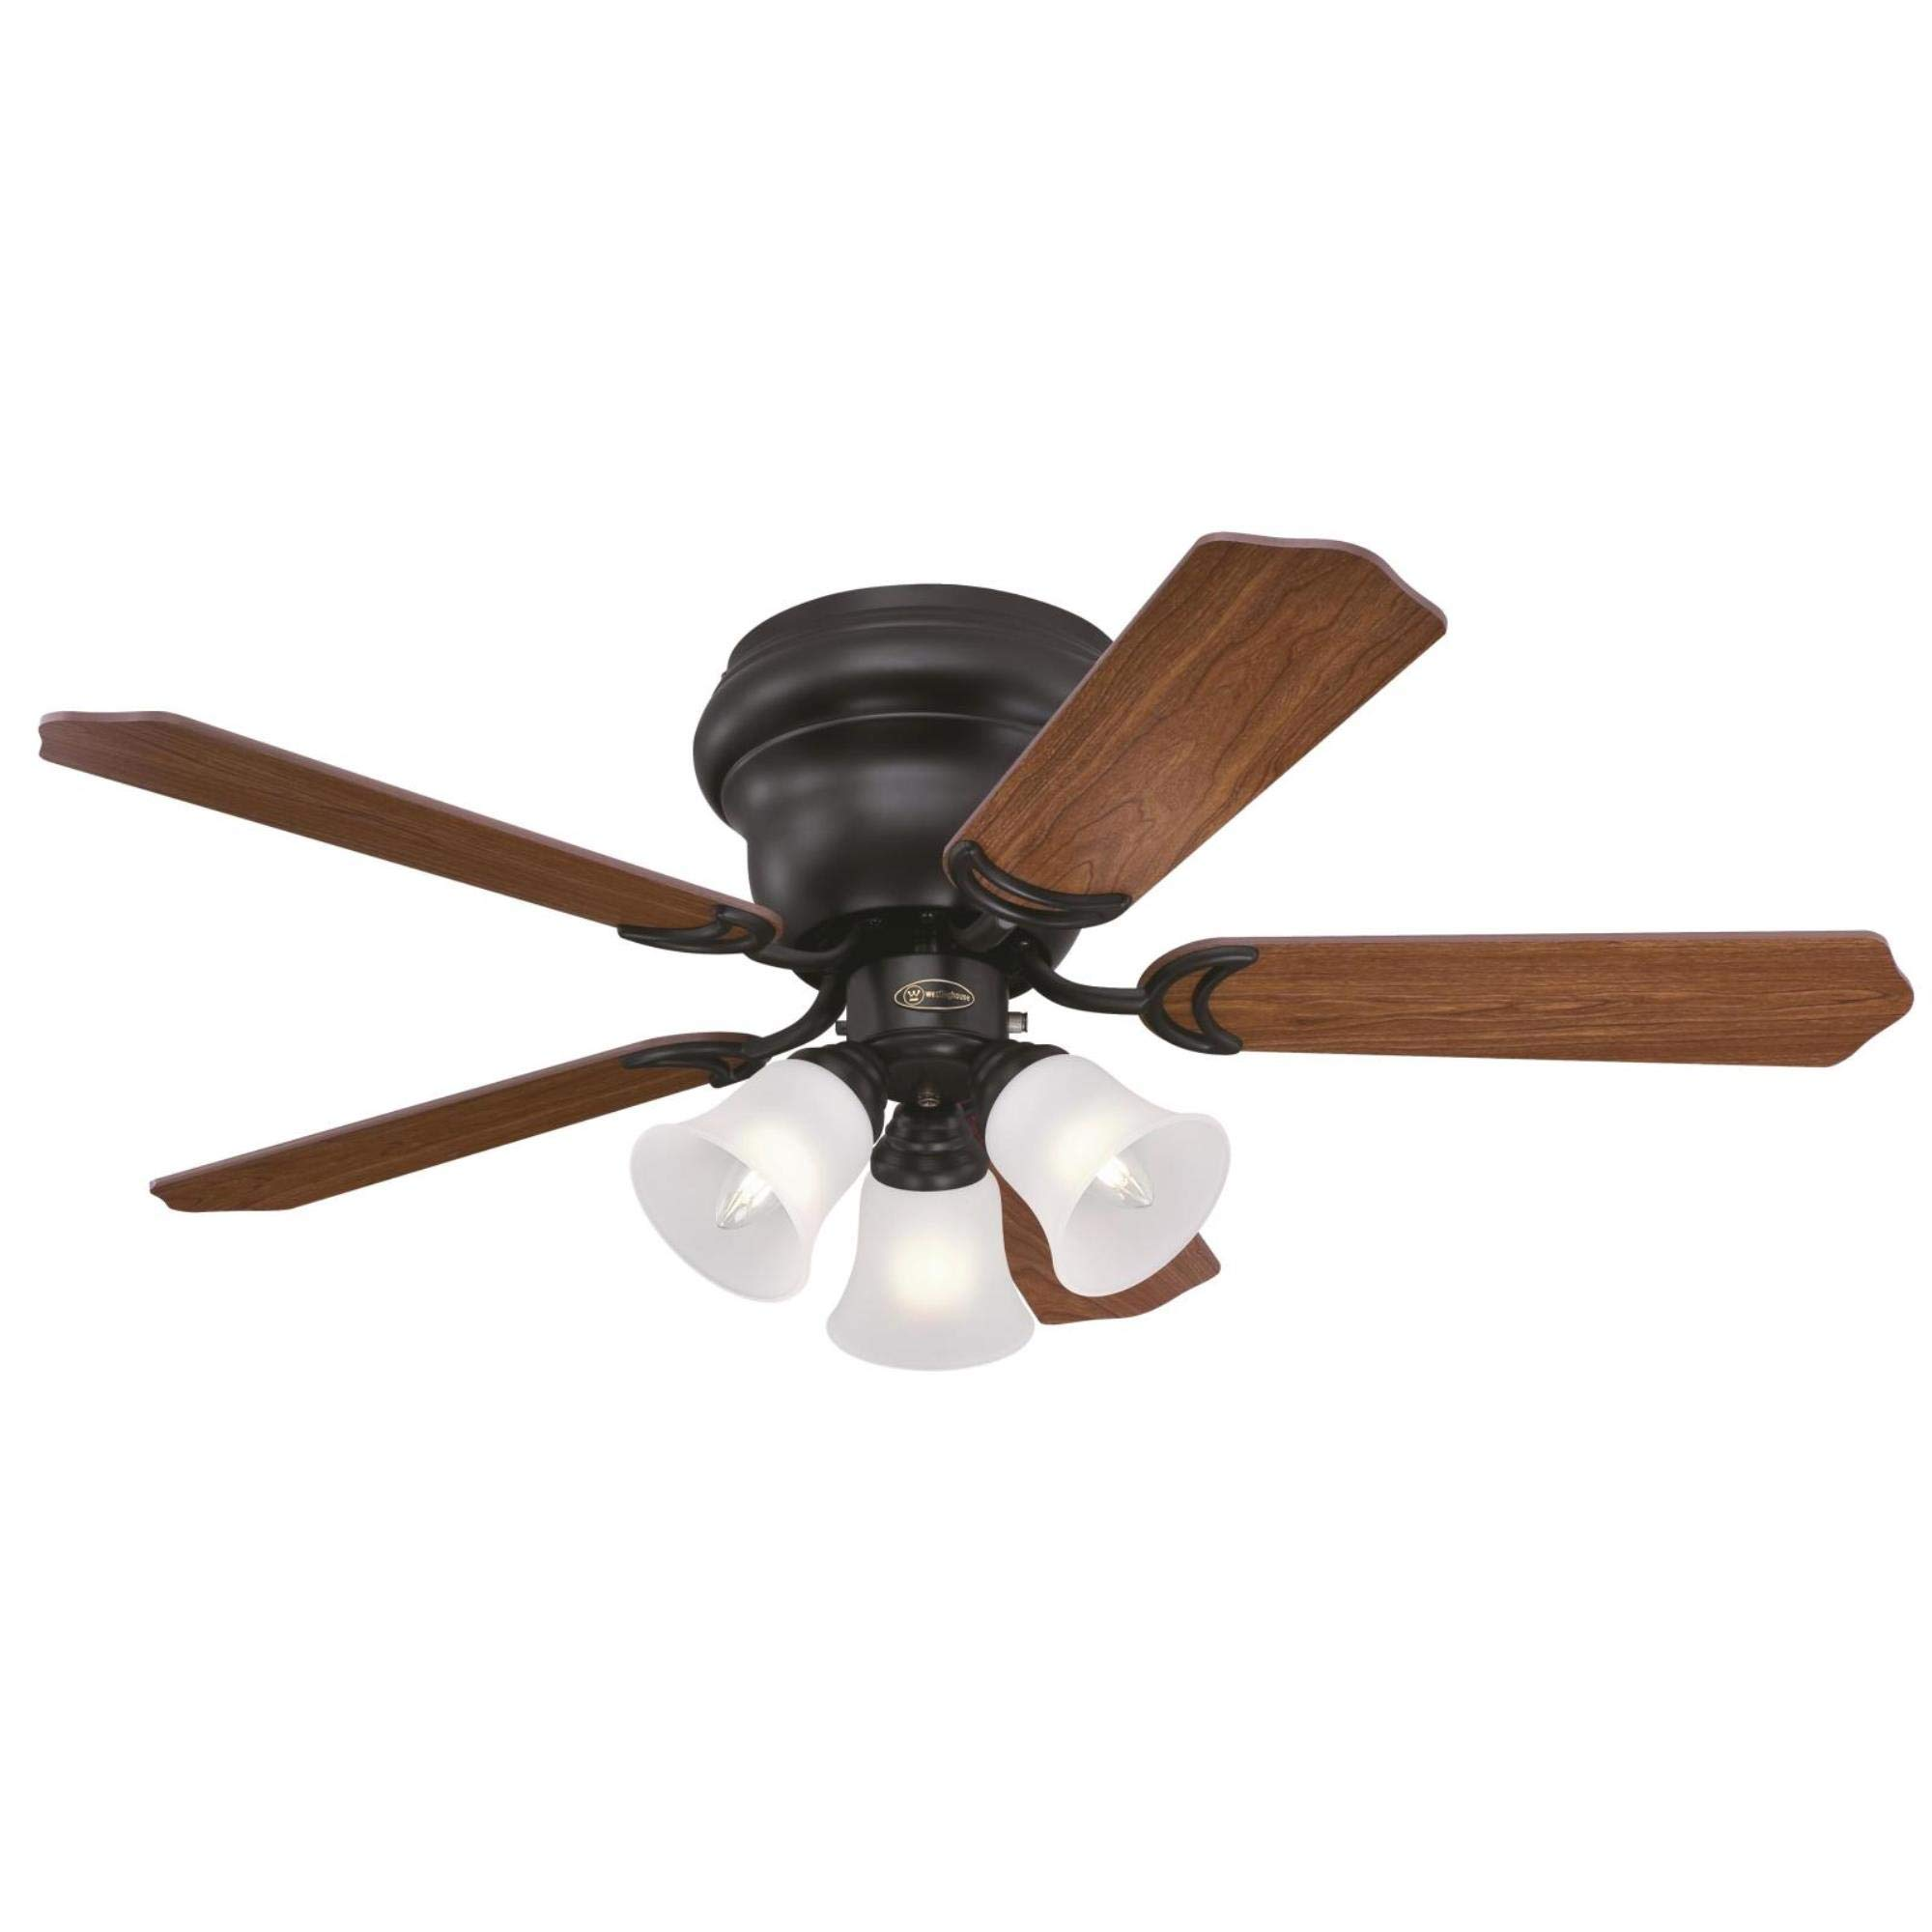 Westinghouse Lighting 7231300 CONTEMPRA TRIO Indoor Ceiling Fan with Light, 42 Inch, OIL RUBBED BRONZE